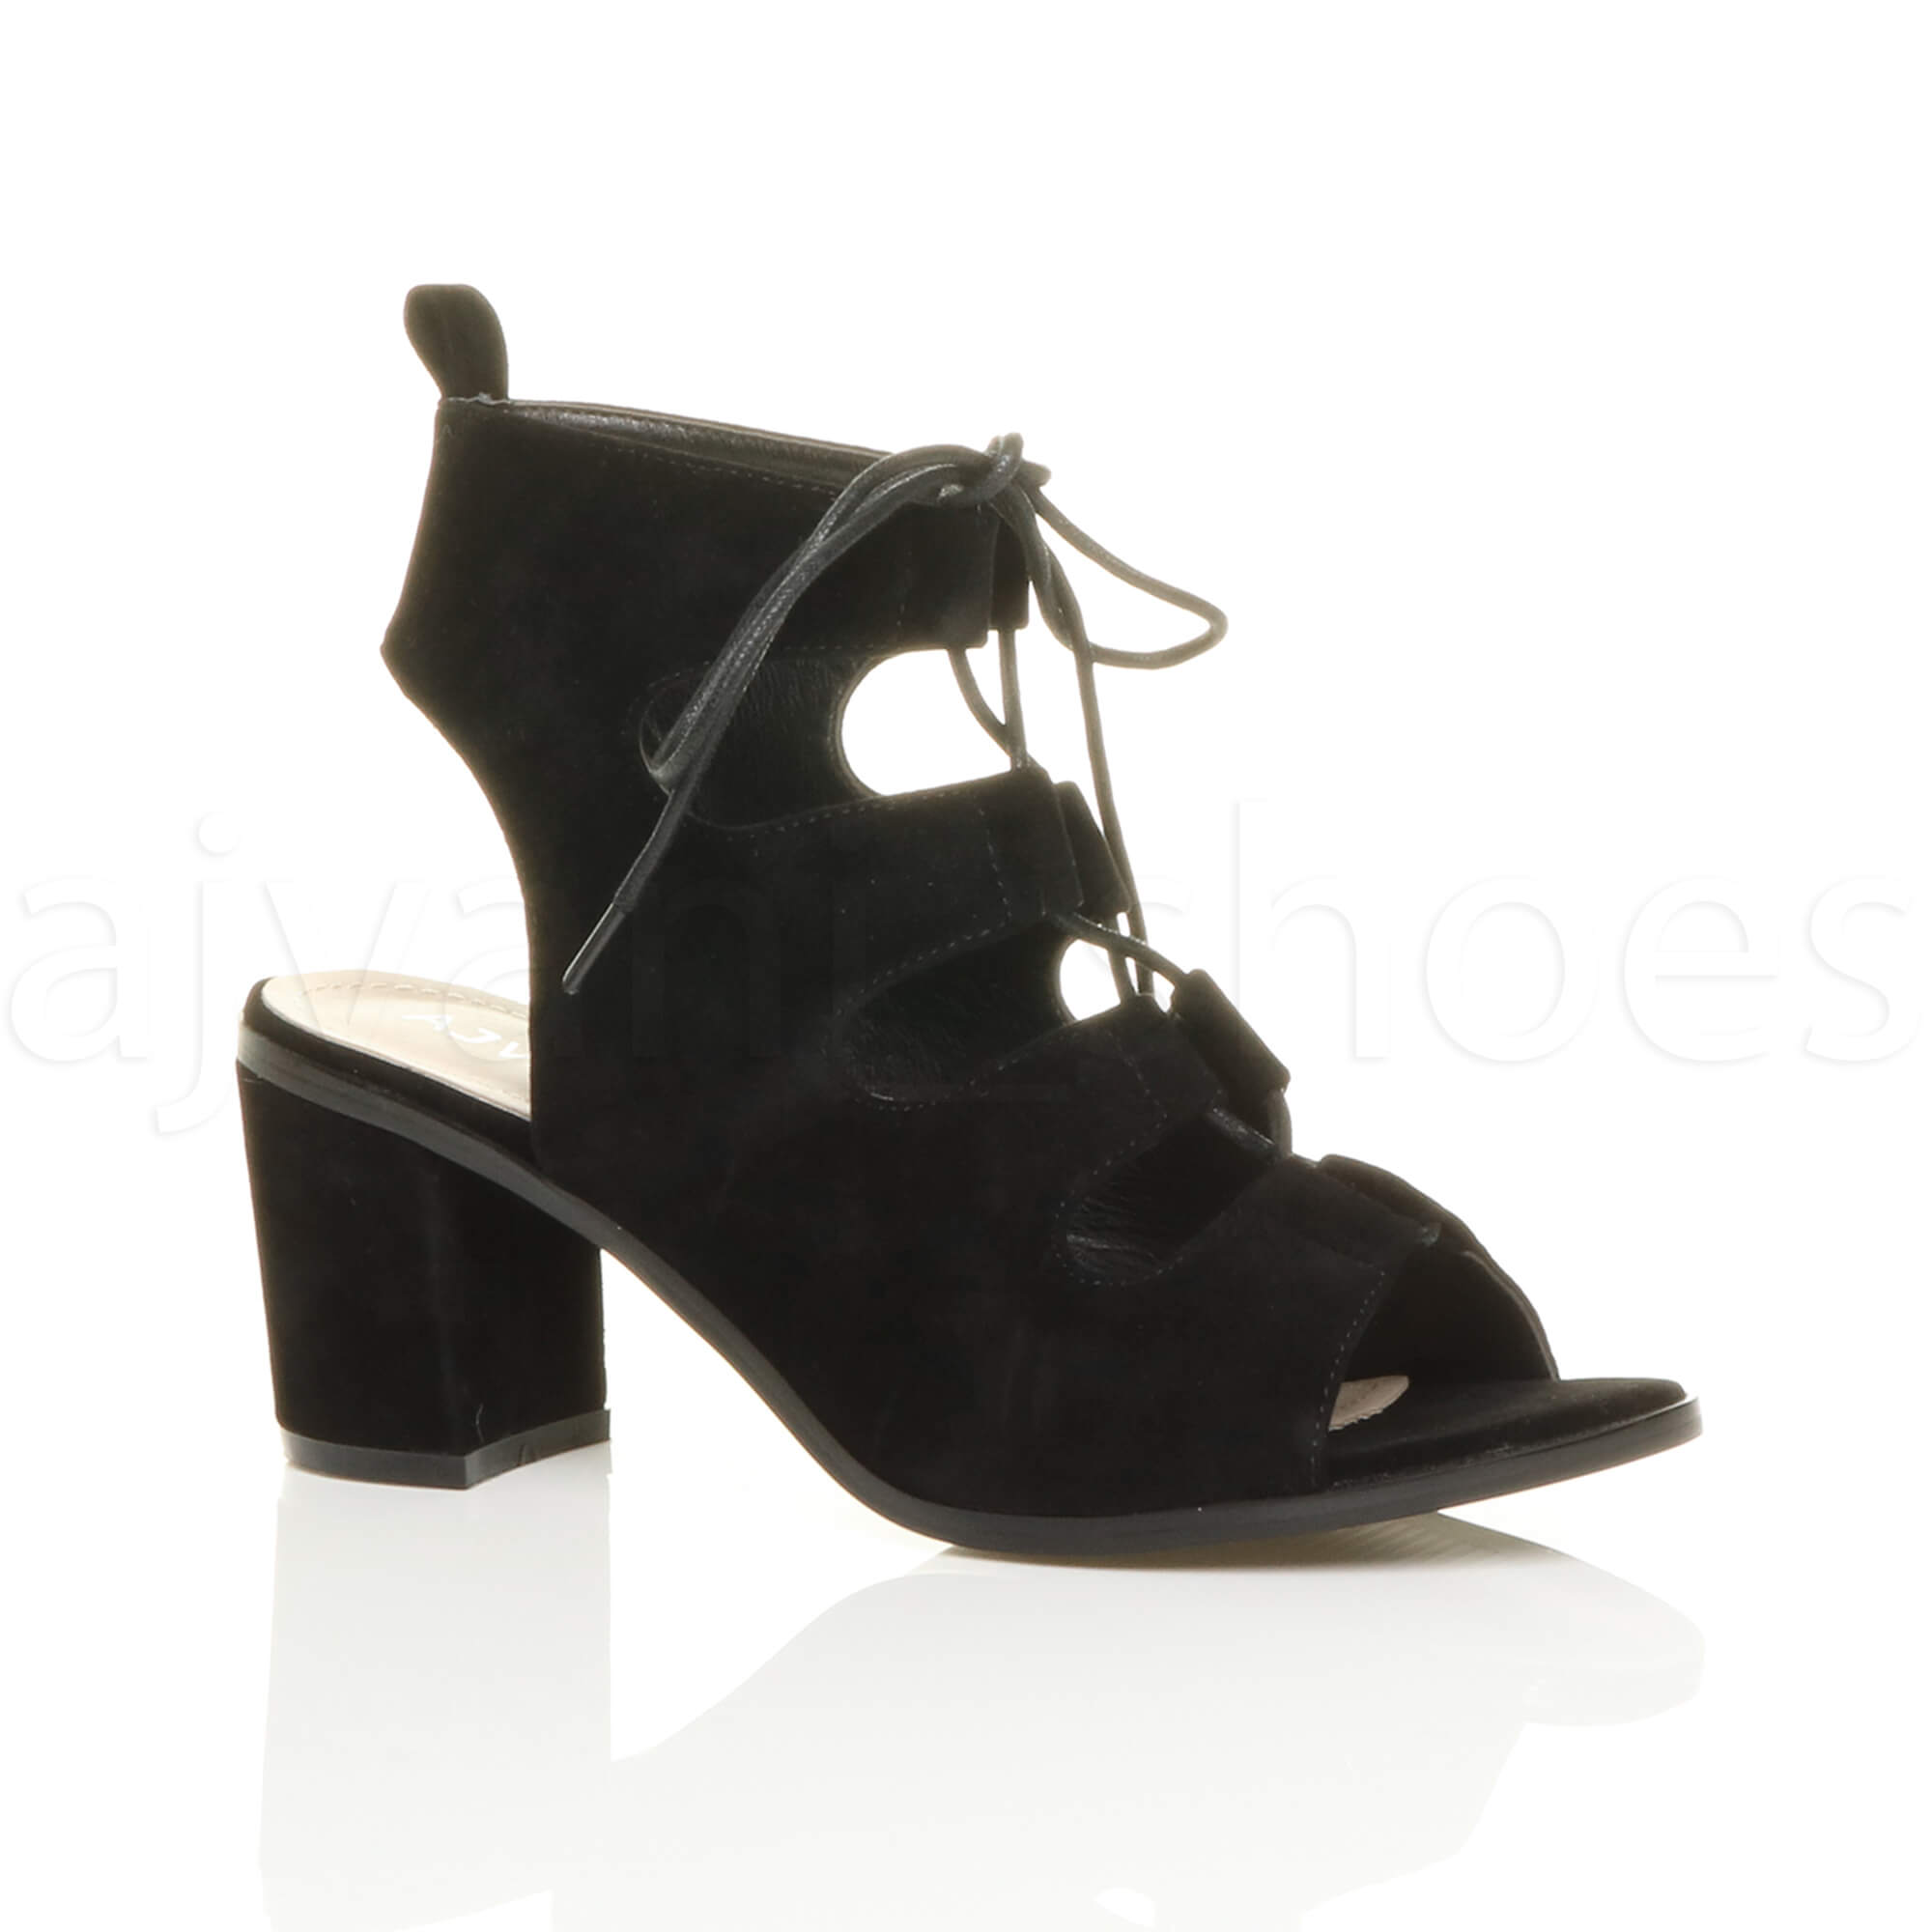 WOMENS-LADIES-MID-HEEL-CUT-OUT-GHILLIE-LACE-UP-PEEP-TOE-ANKLE-BOOTS-SANDALS-SIZE